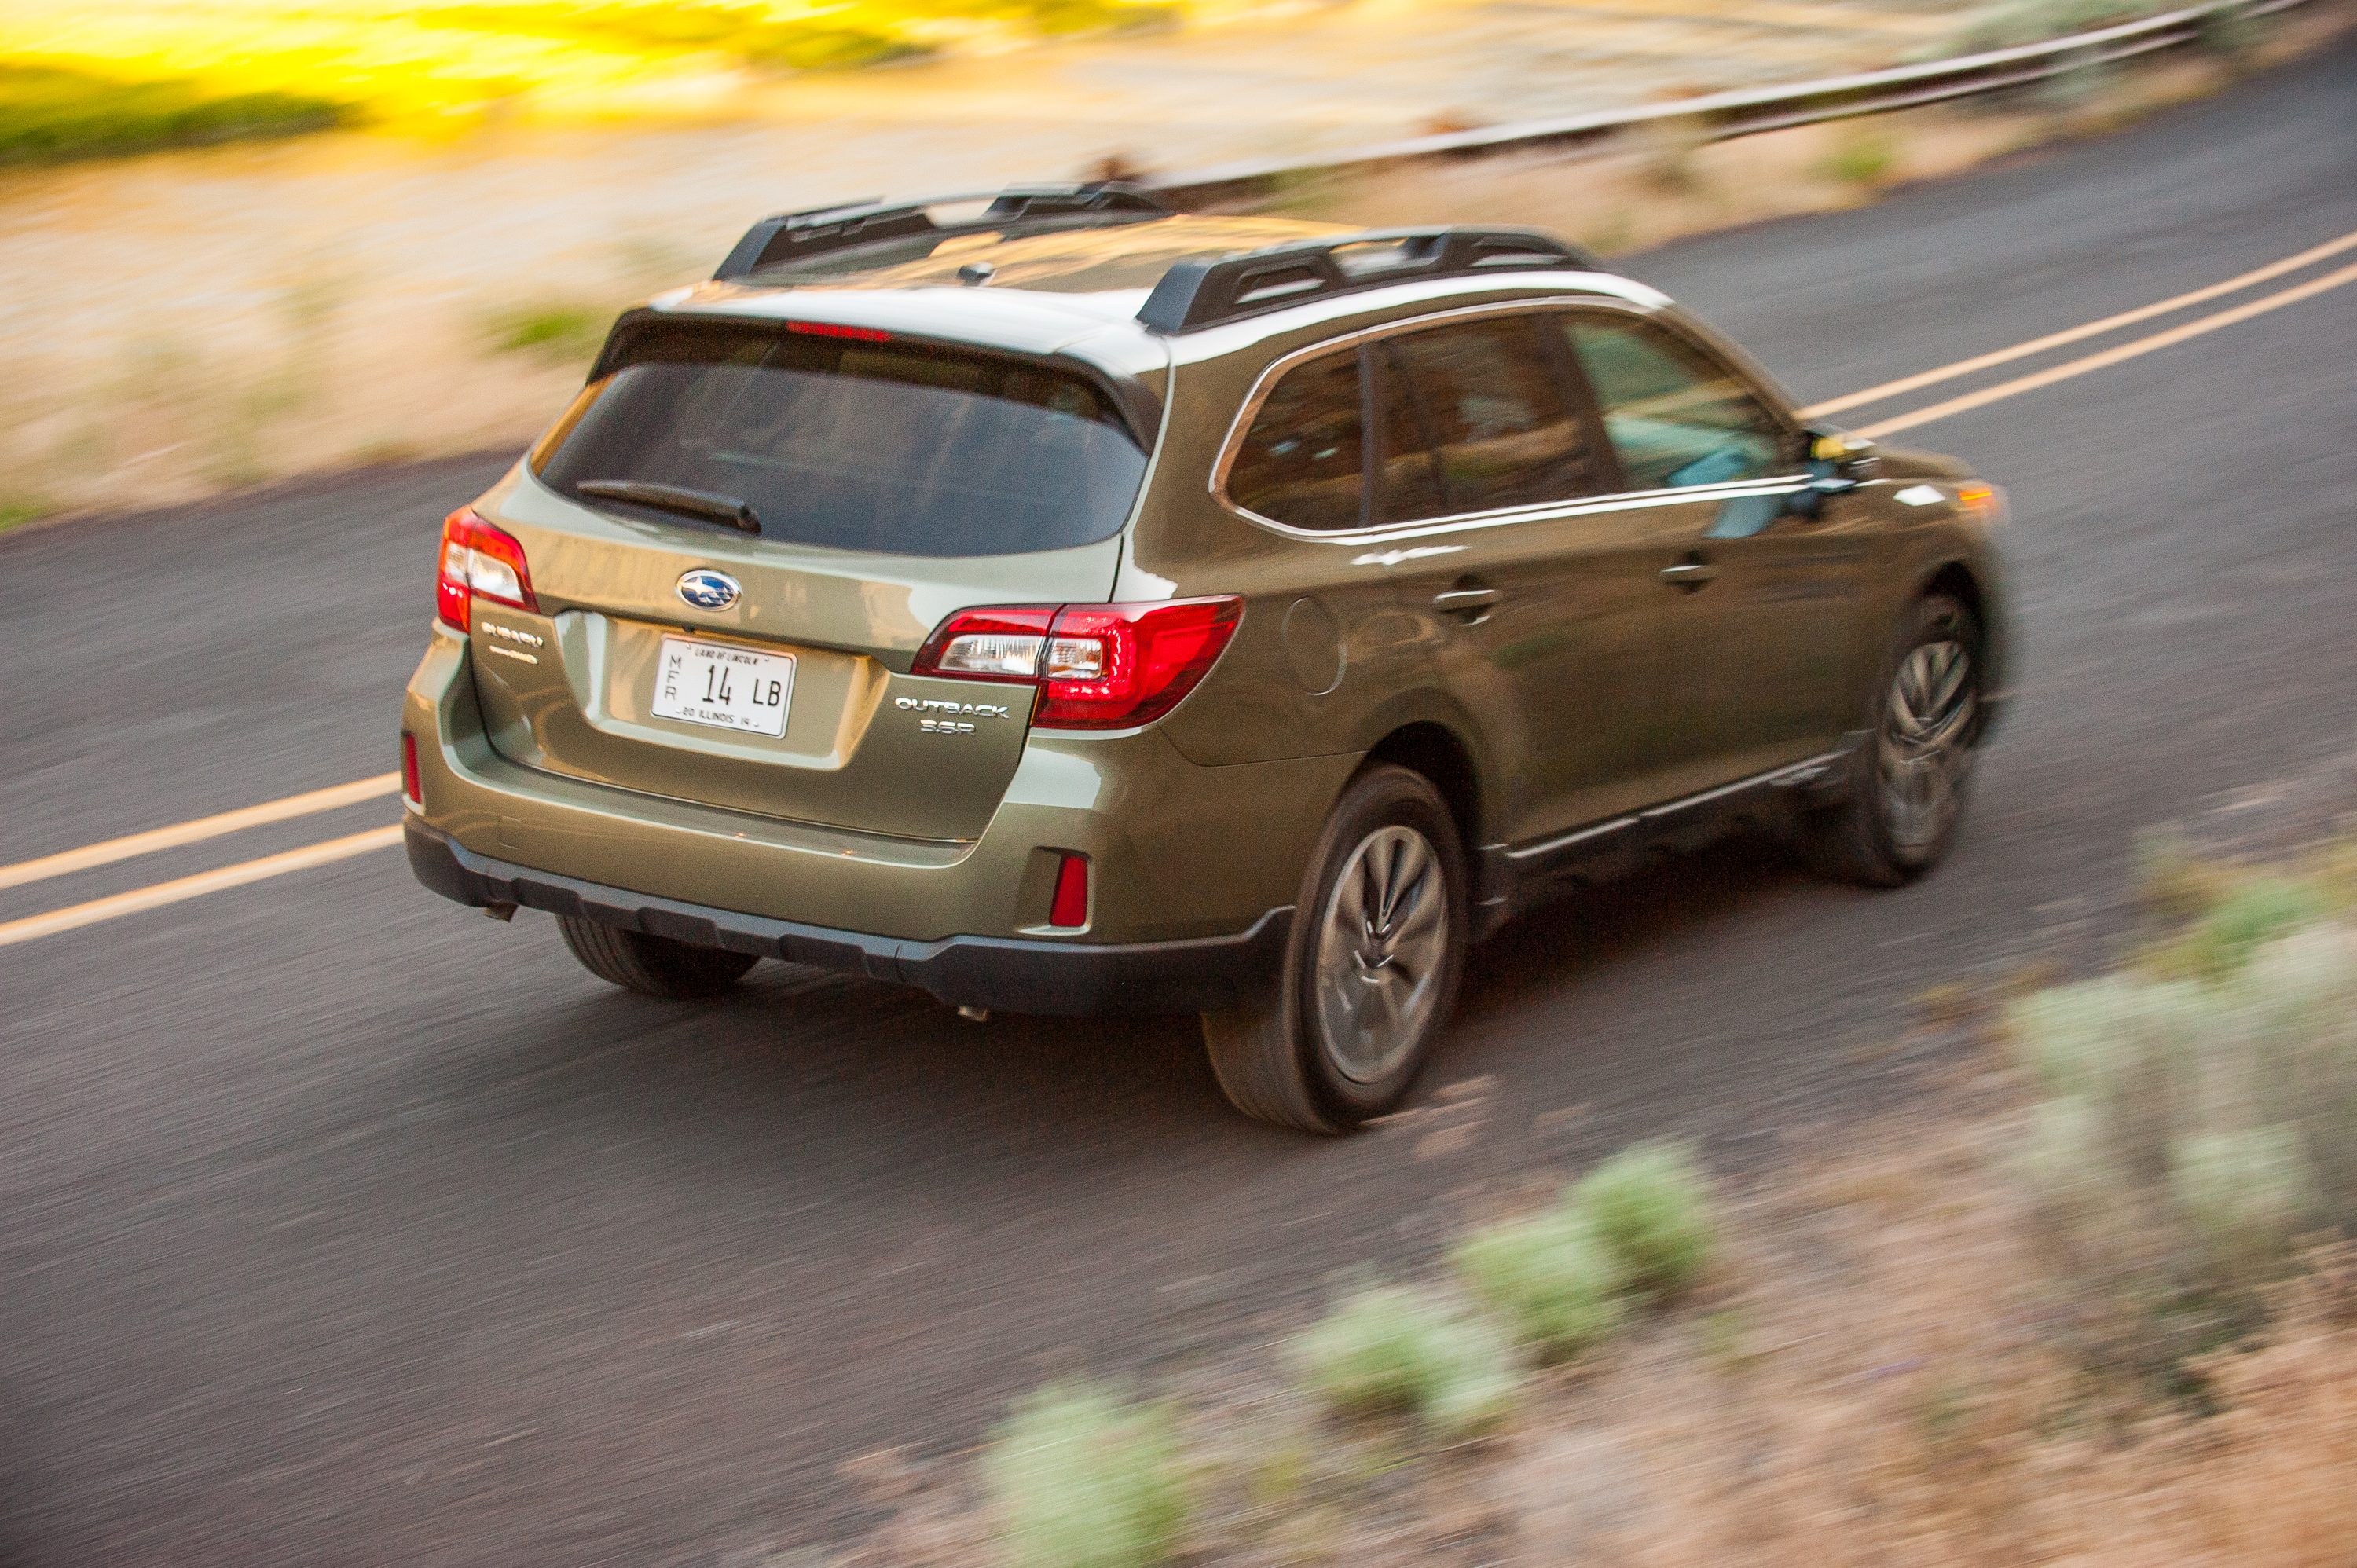 The Outback offers lots of visibility out the back. photo: Subaru